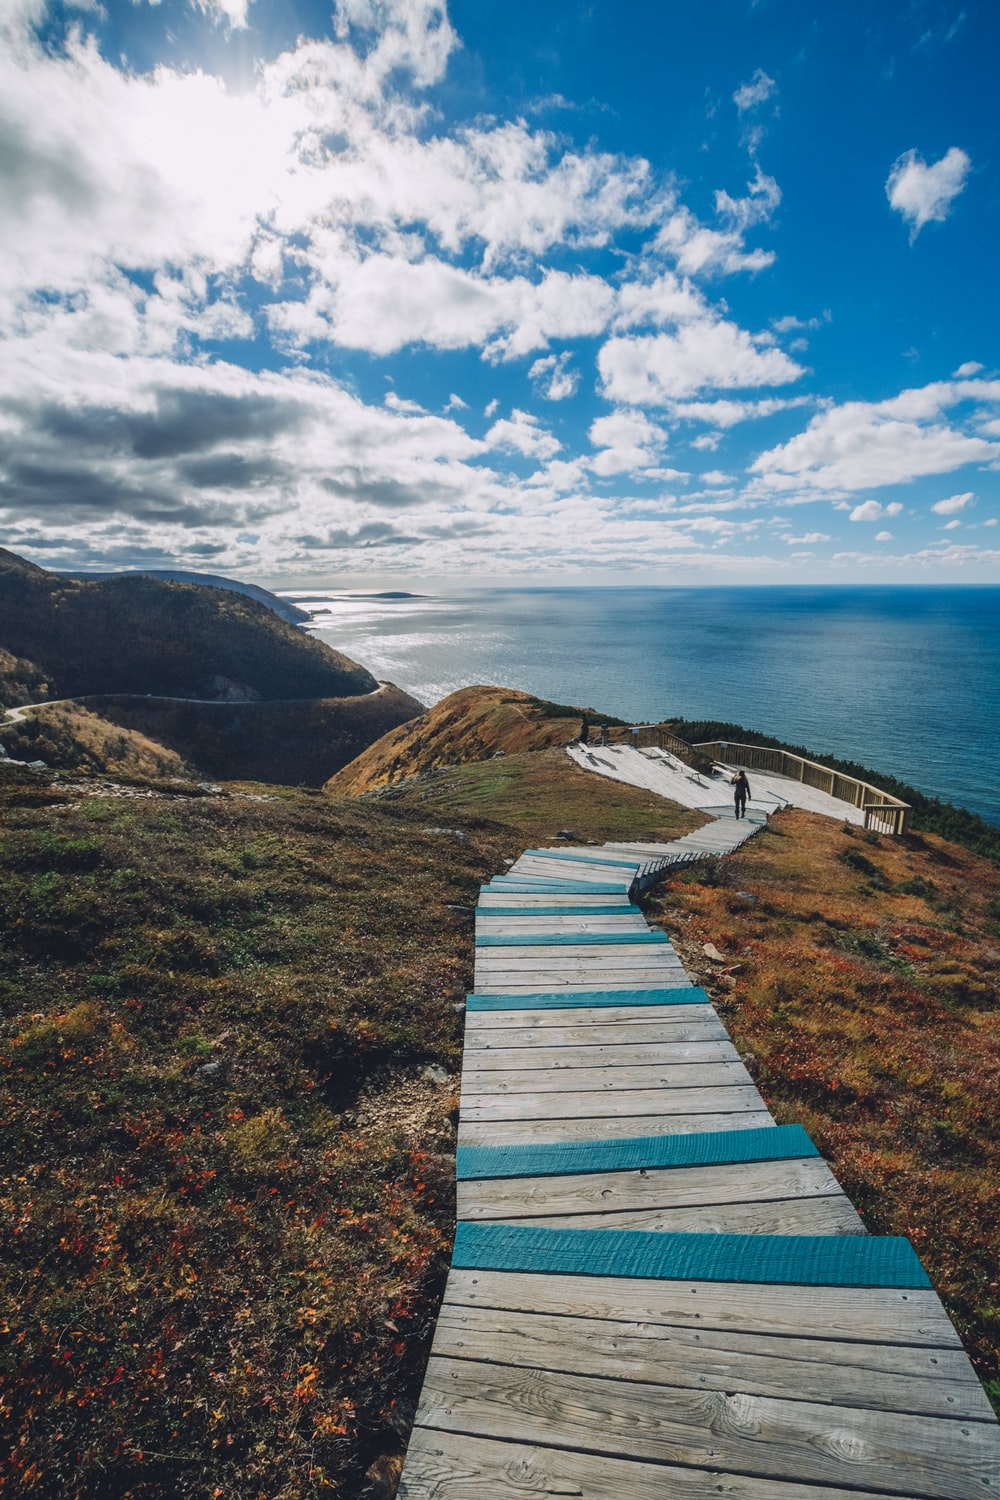 brow wooden stairs on cliff overlooking sea at daytme